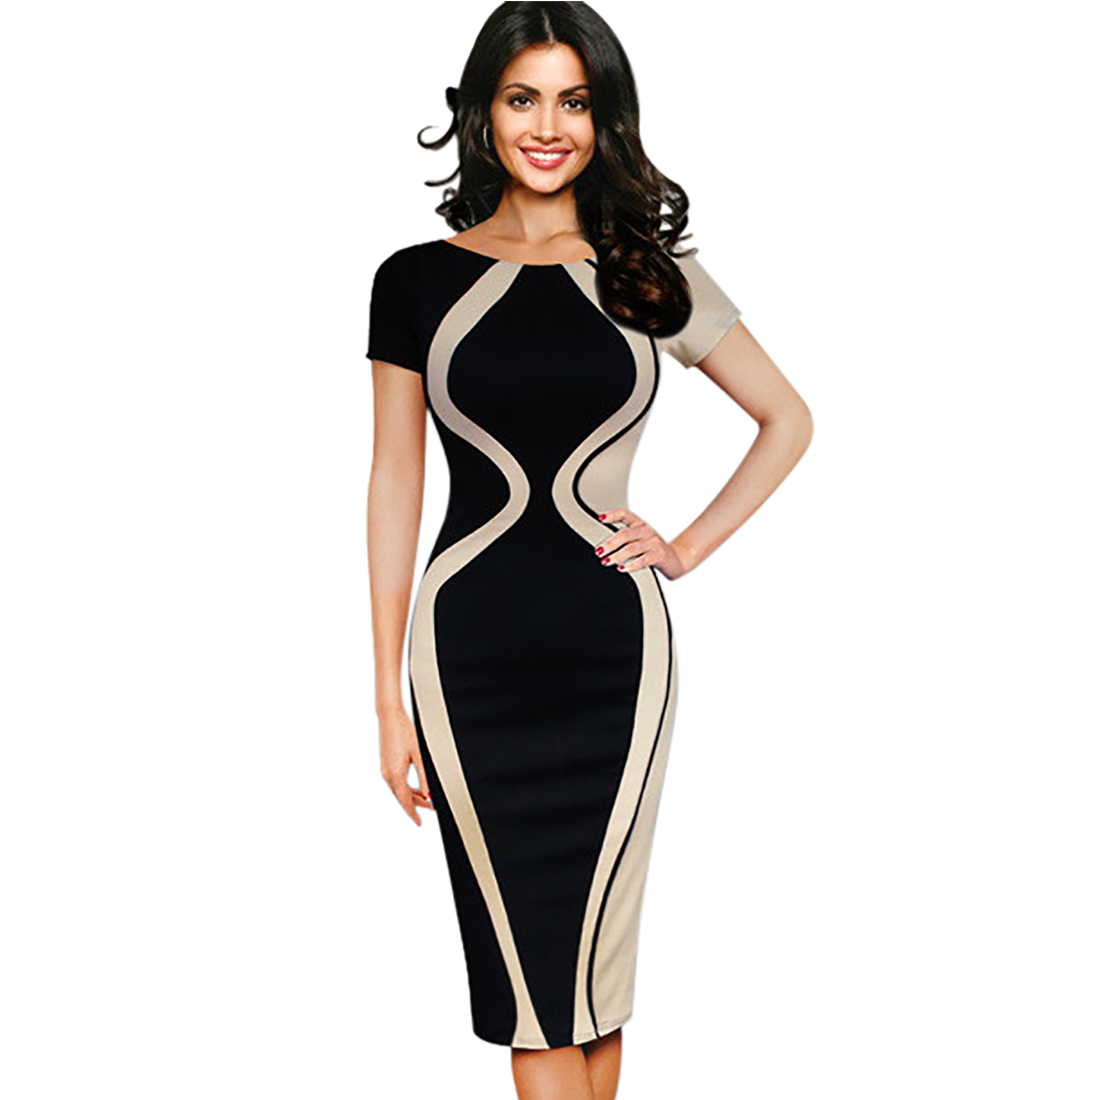 COOL FASHION  FOR WOMEN Oxiuly Womens Elegant Optical Illusion Colorblock Contrast Patchwork O-Neck Bodycon Office Work Casual Office Pencil Slim Dress